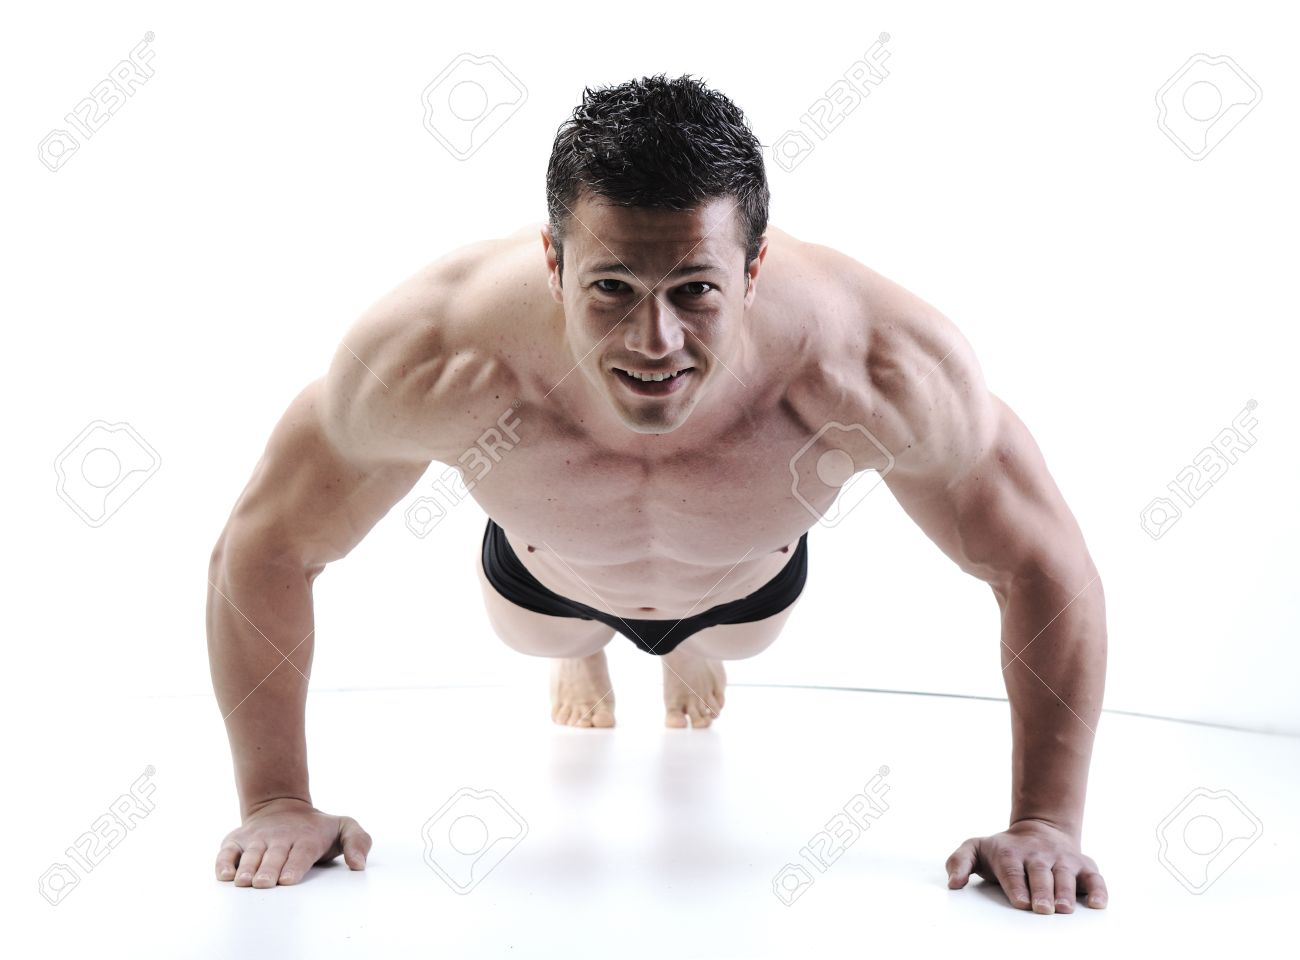 The Perfect male body - Awesome bodybuilder posing Stock Photo - 10316913